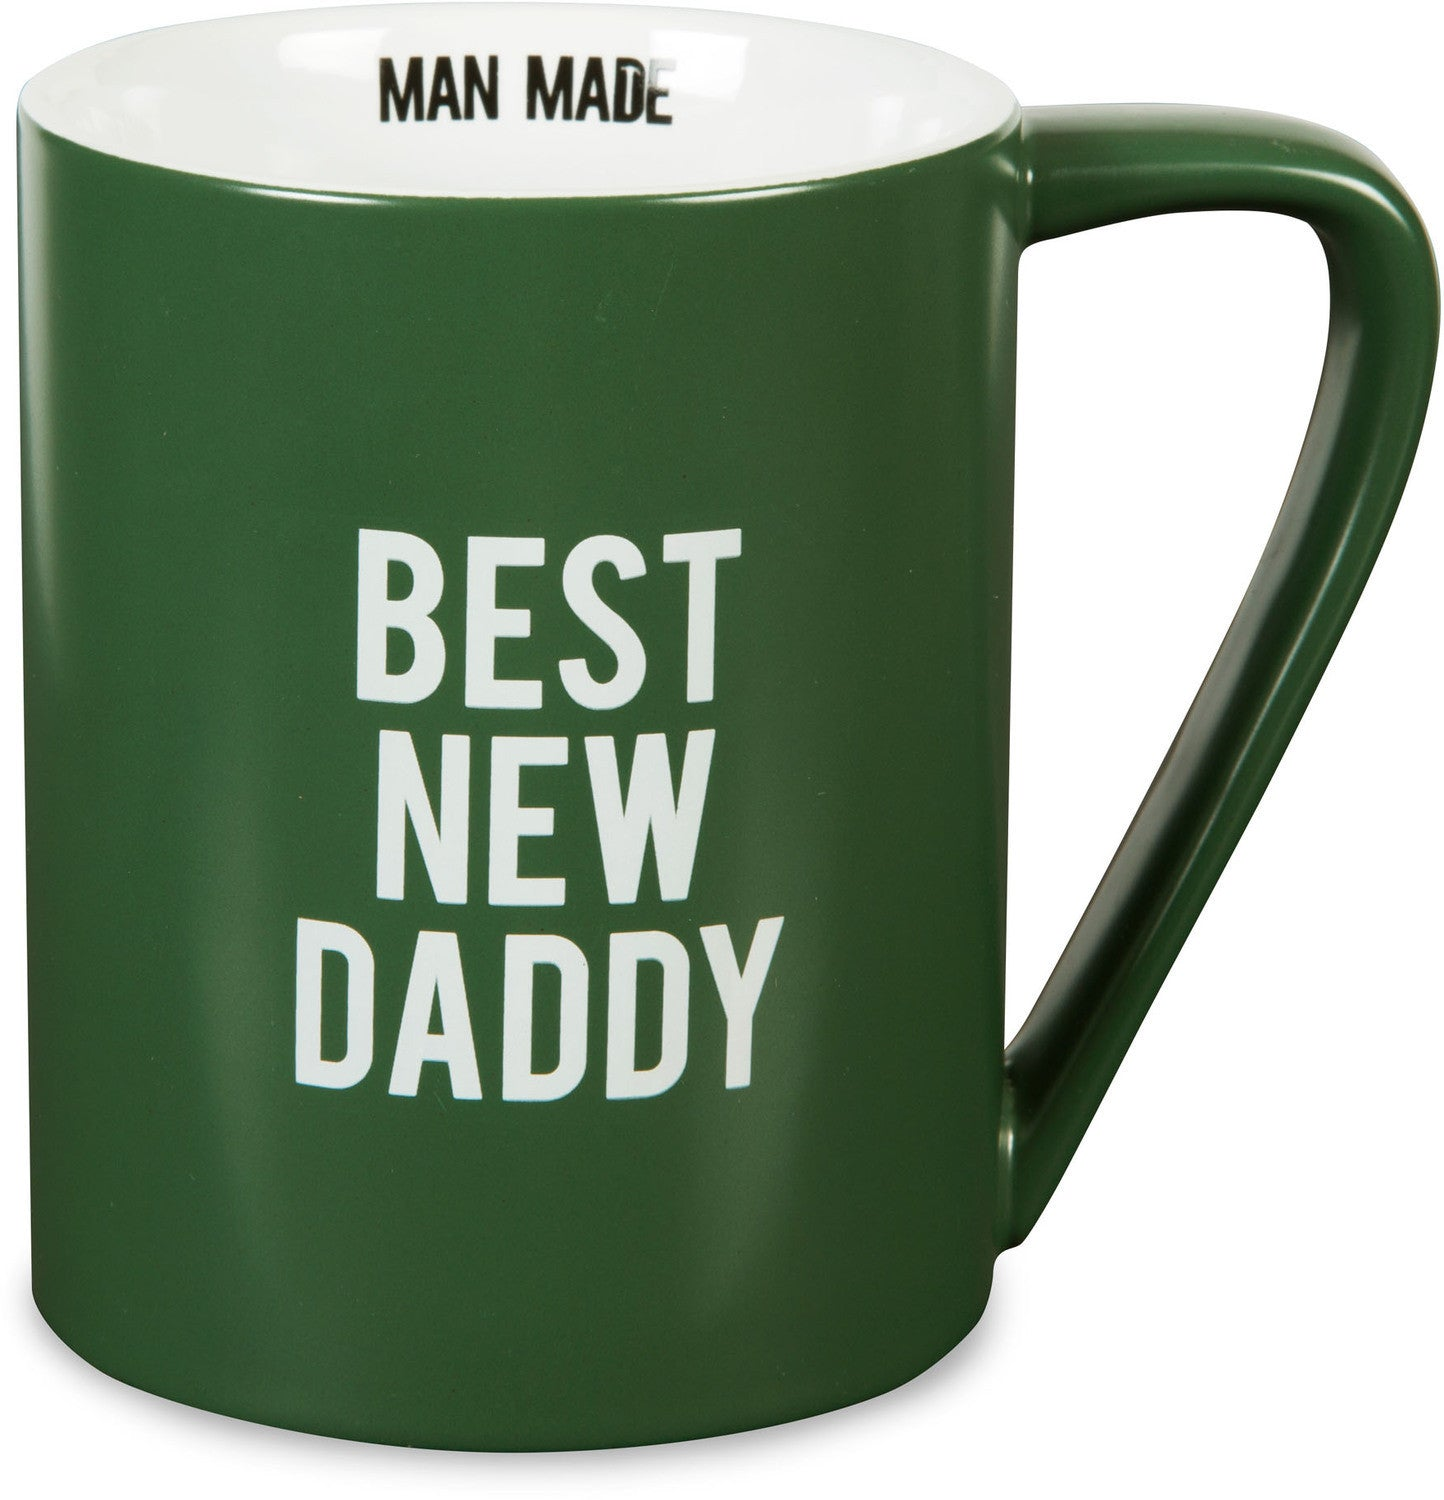 Best New Daddy Ceramic Mug (Man Made) by Pavilion Gifts (Front)